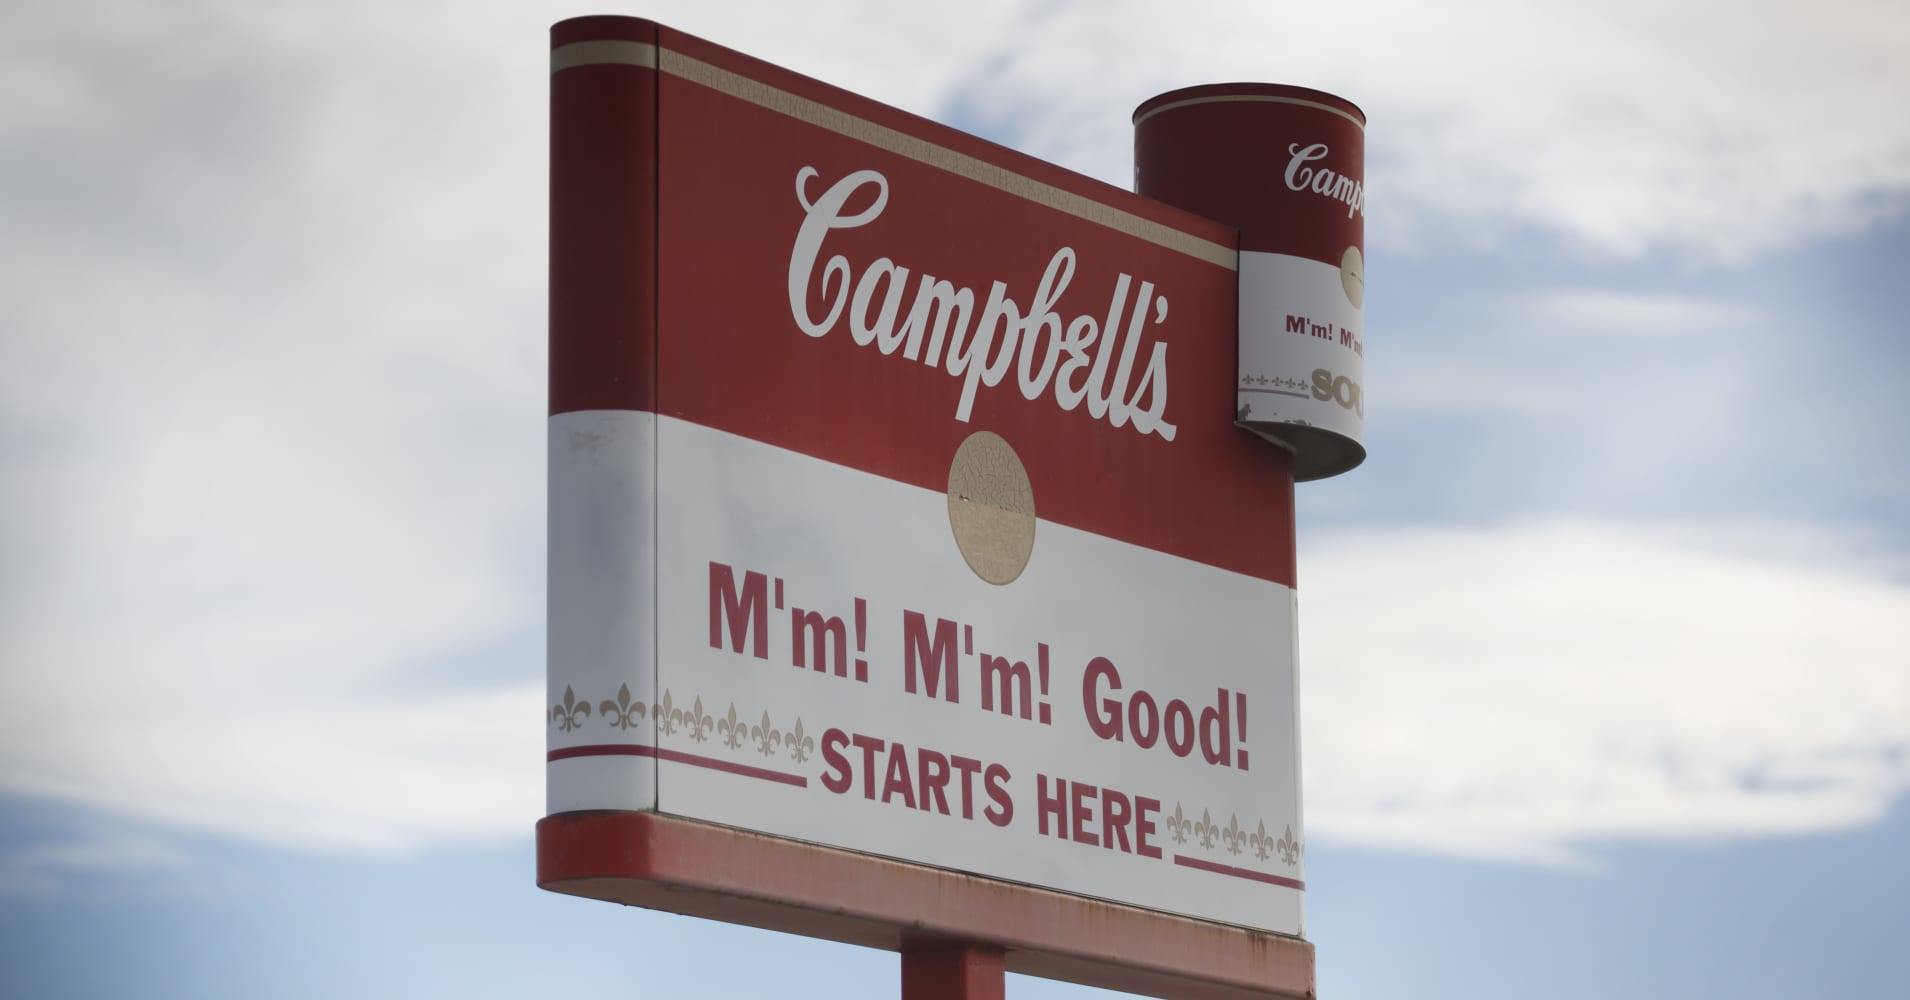 Campbell Soup tops analyst expectations ahead of contested shareholder vote